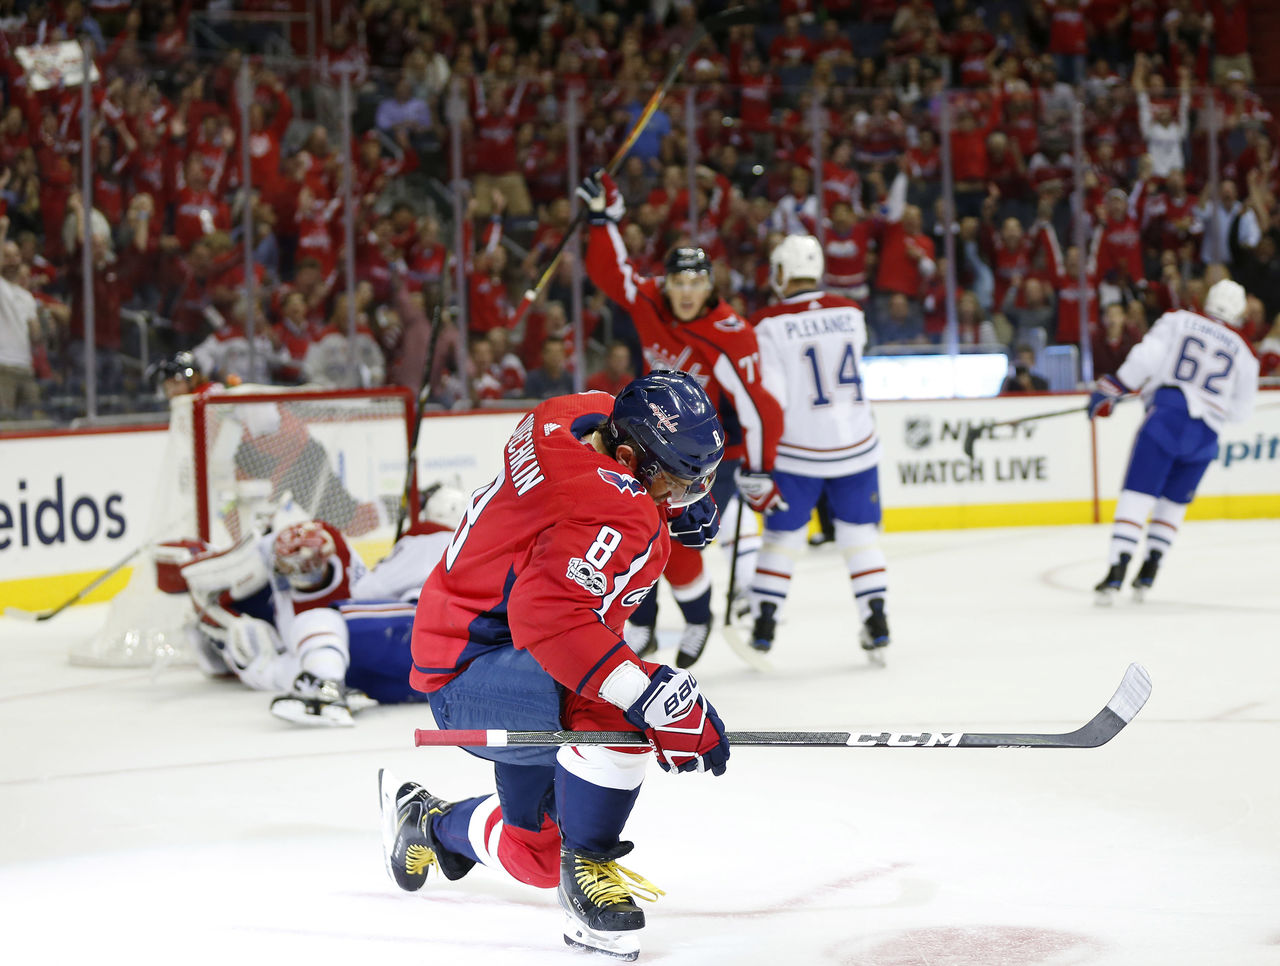 Cropped 2017 10 08t000550z 1421810925 nocid rtrmadp 3 nhl montreal canadiens at washington capitals